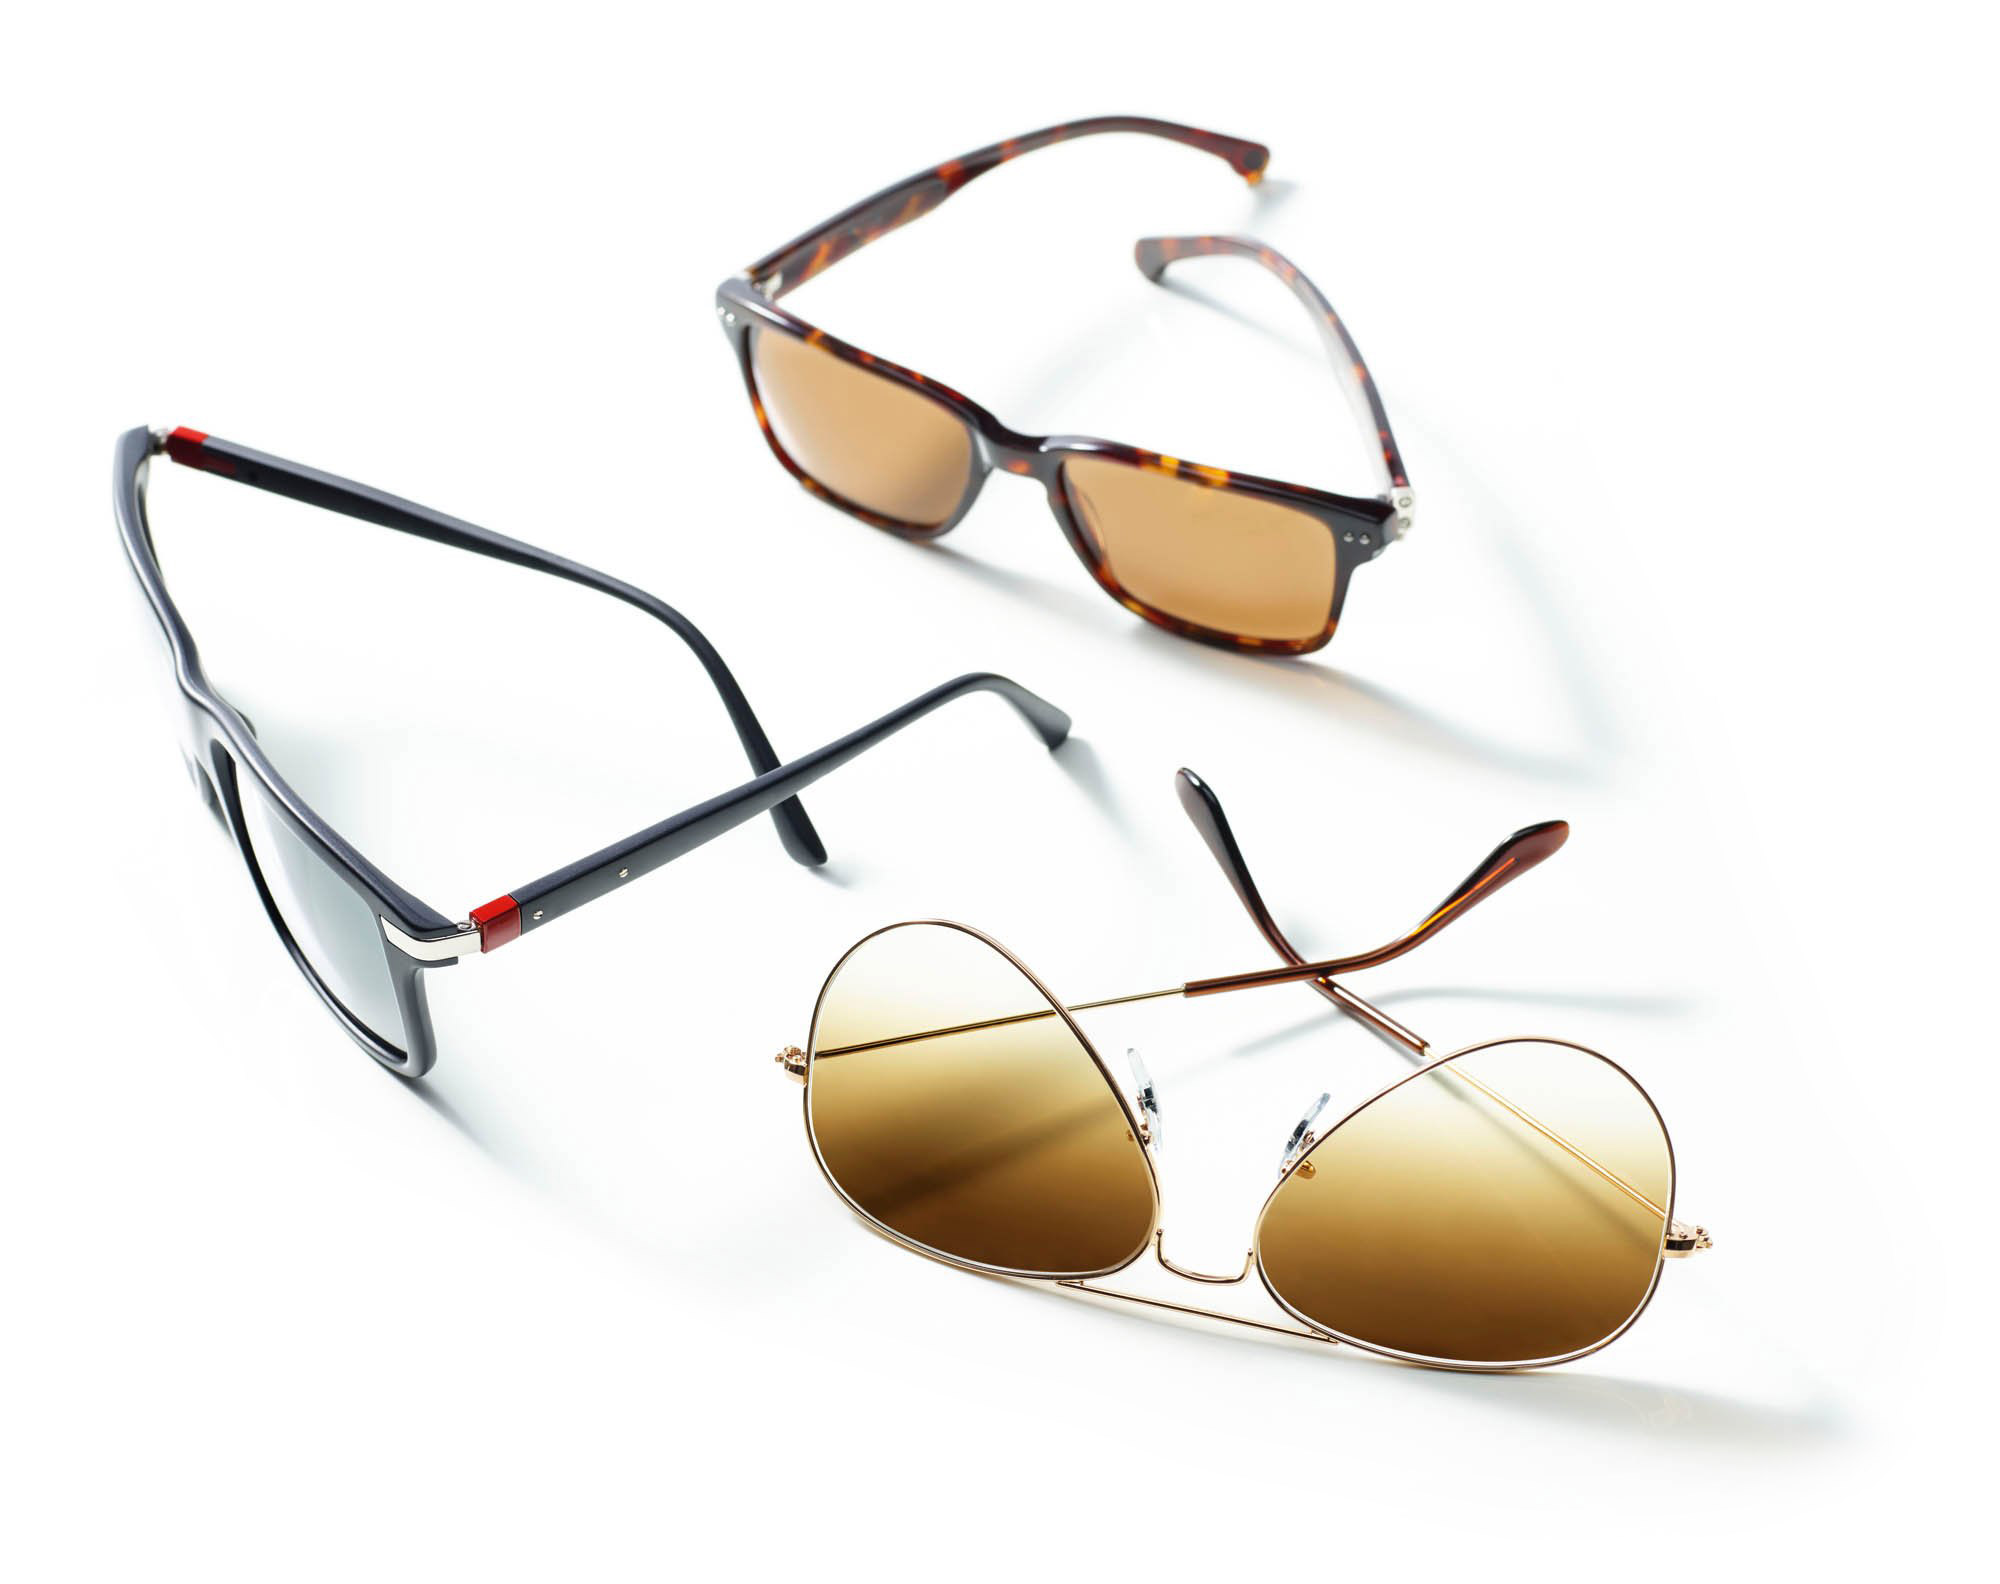 Three sunglasses for ecommerce photography